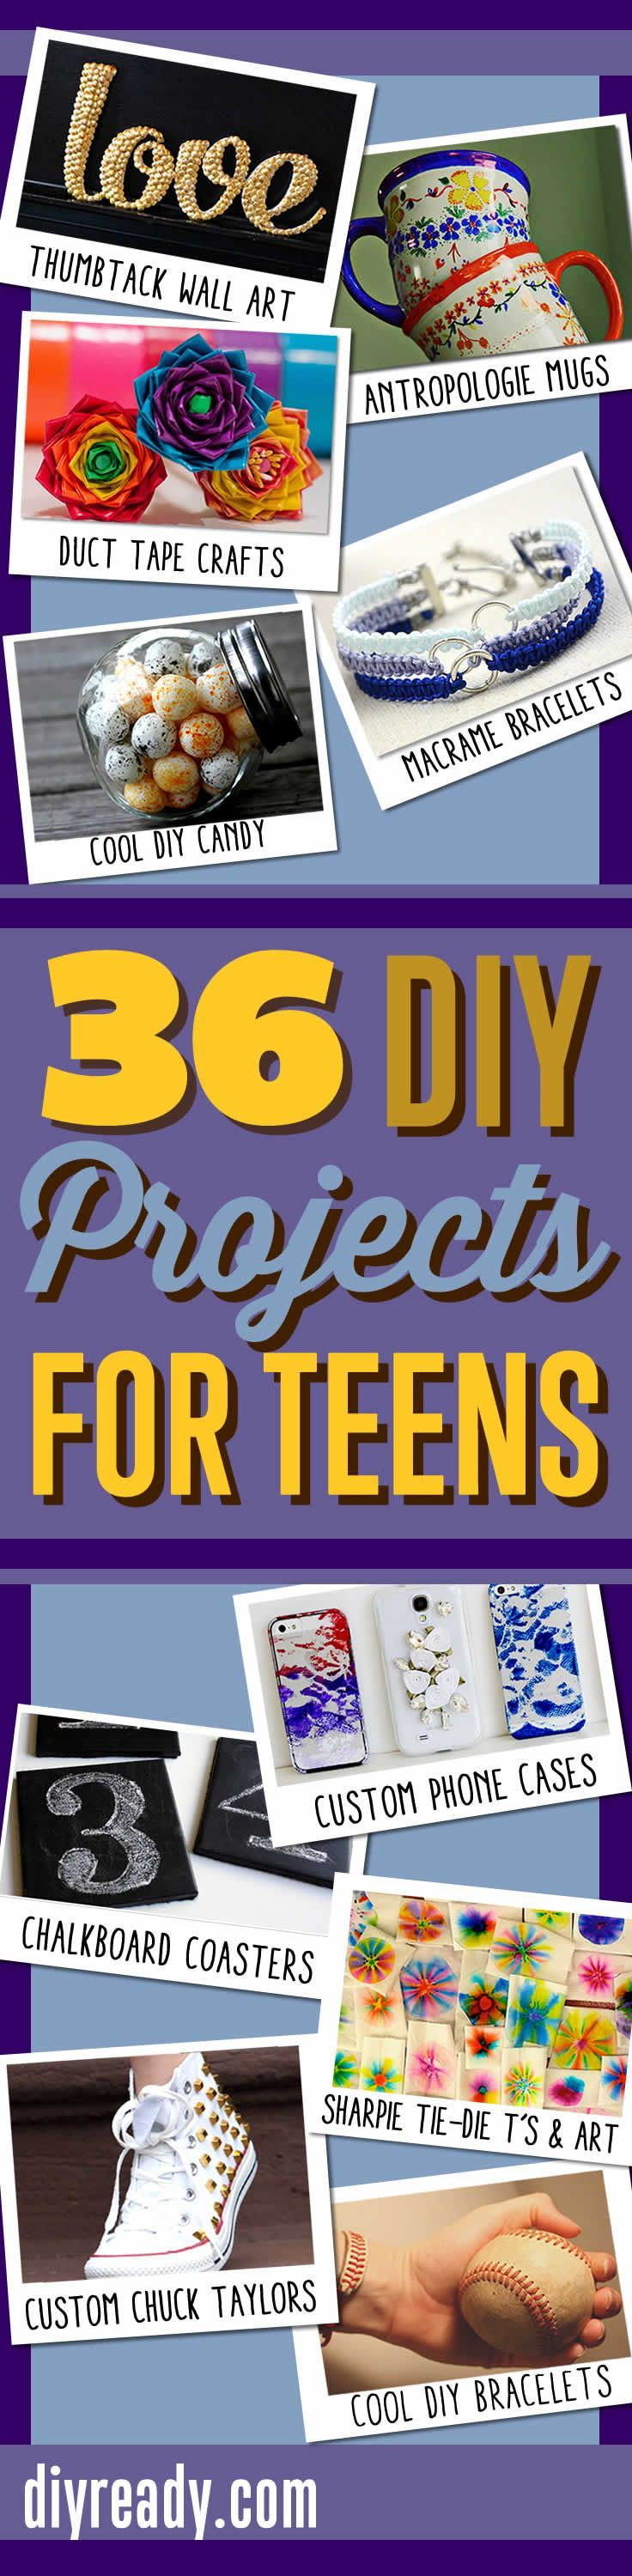 DIY Projects for Teens! 36 Cool DIY Projects For Teens | http://diyready.com/diy-projects-for-teenagers-cool-crafts-for-teens/